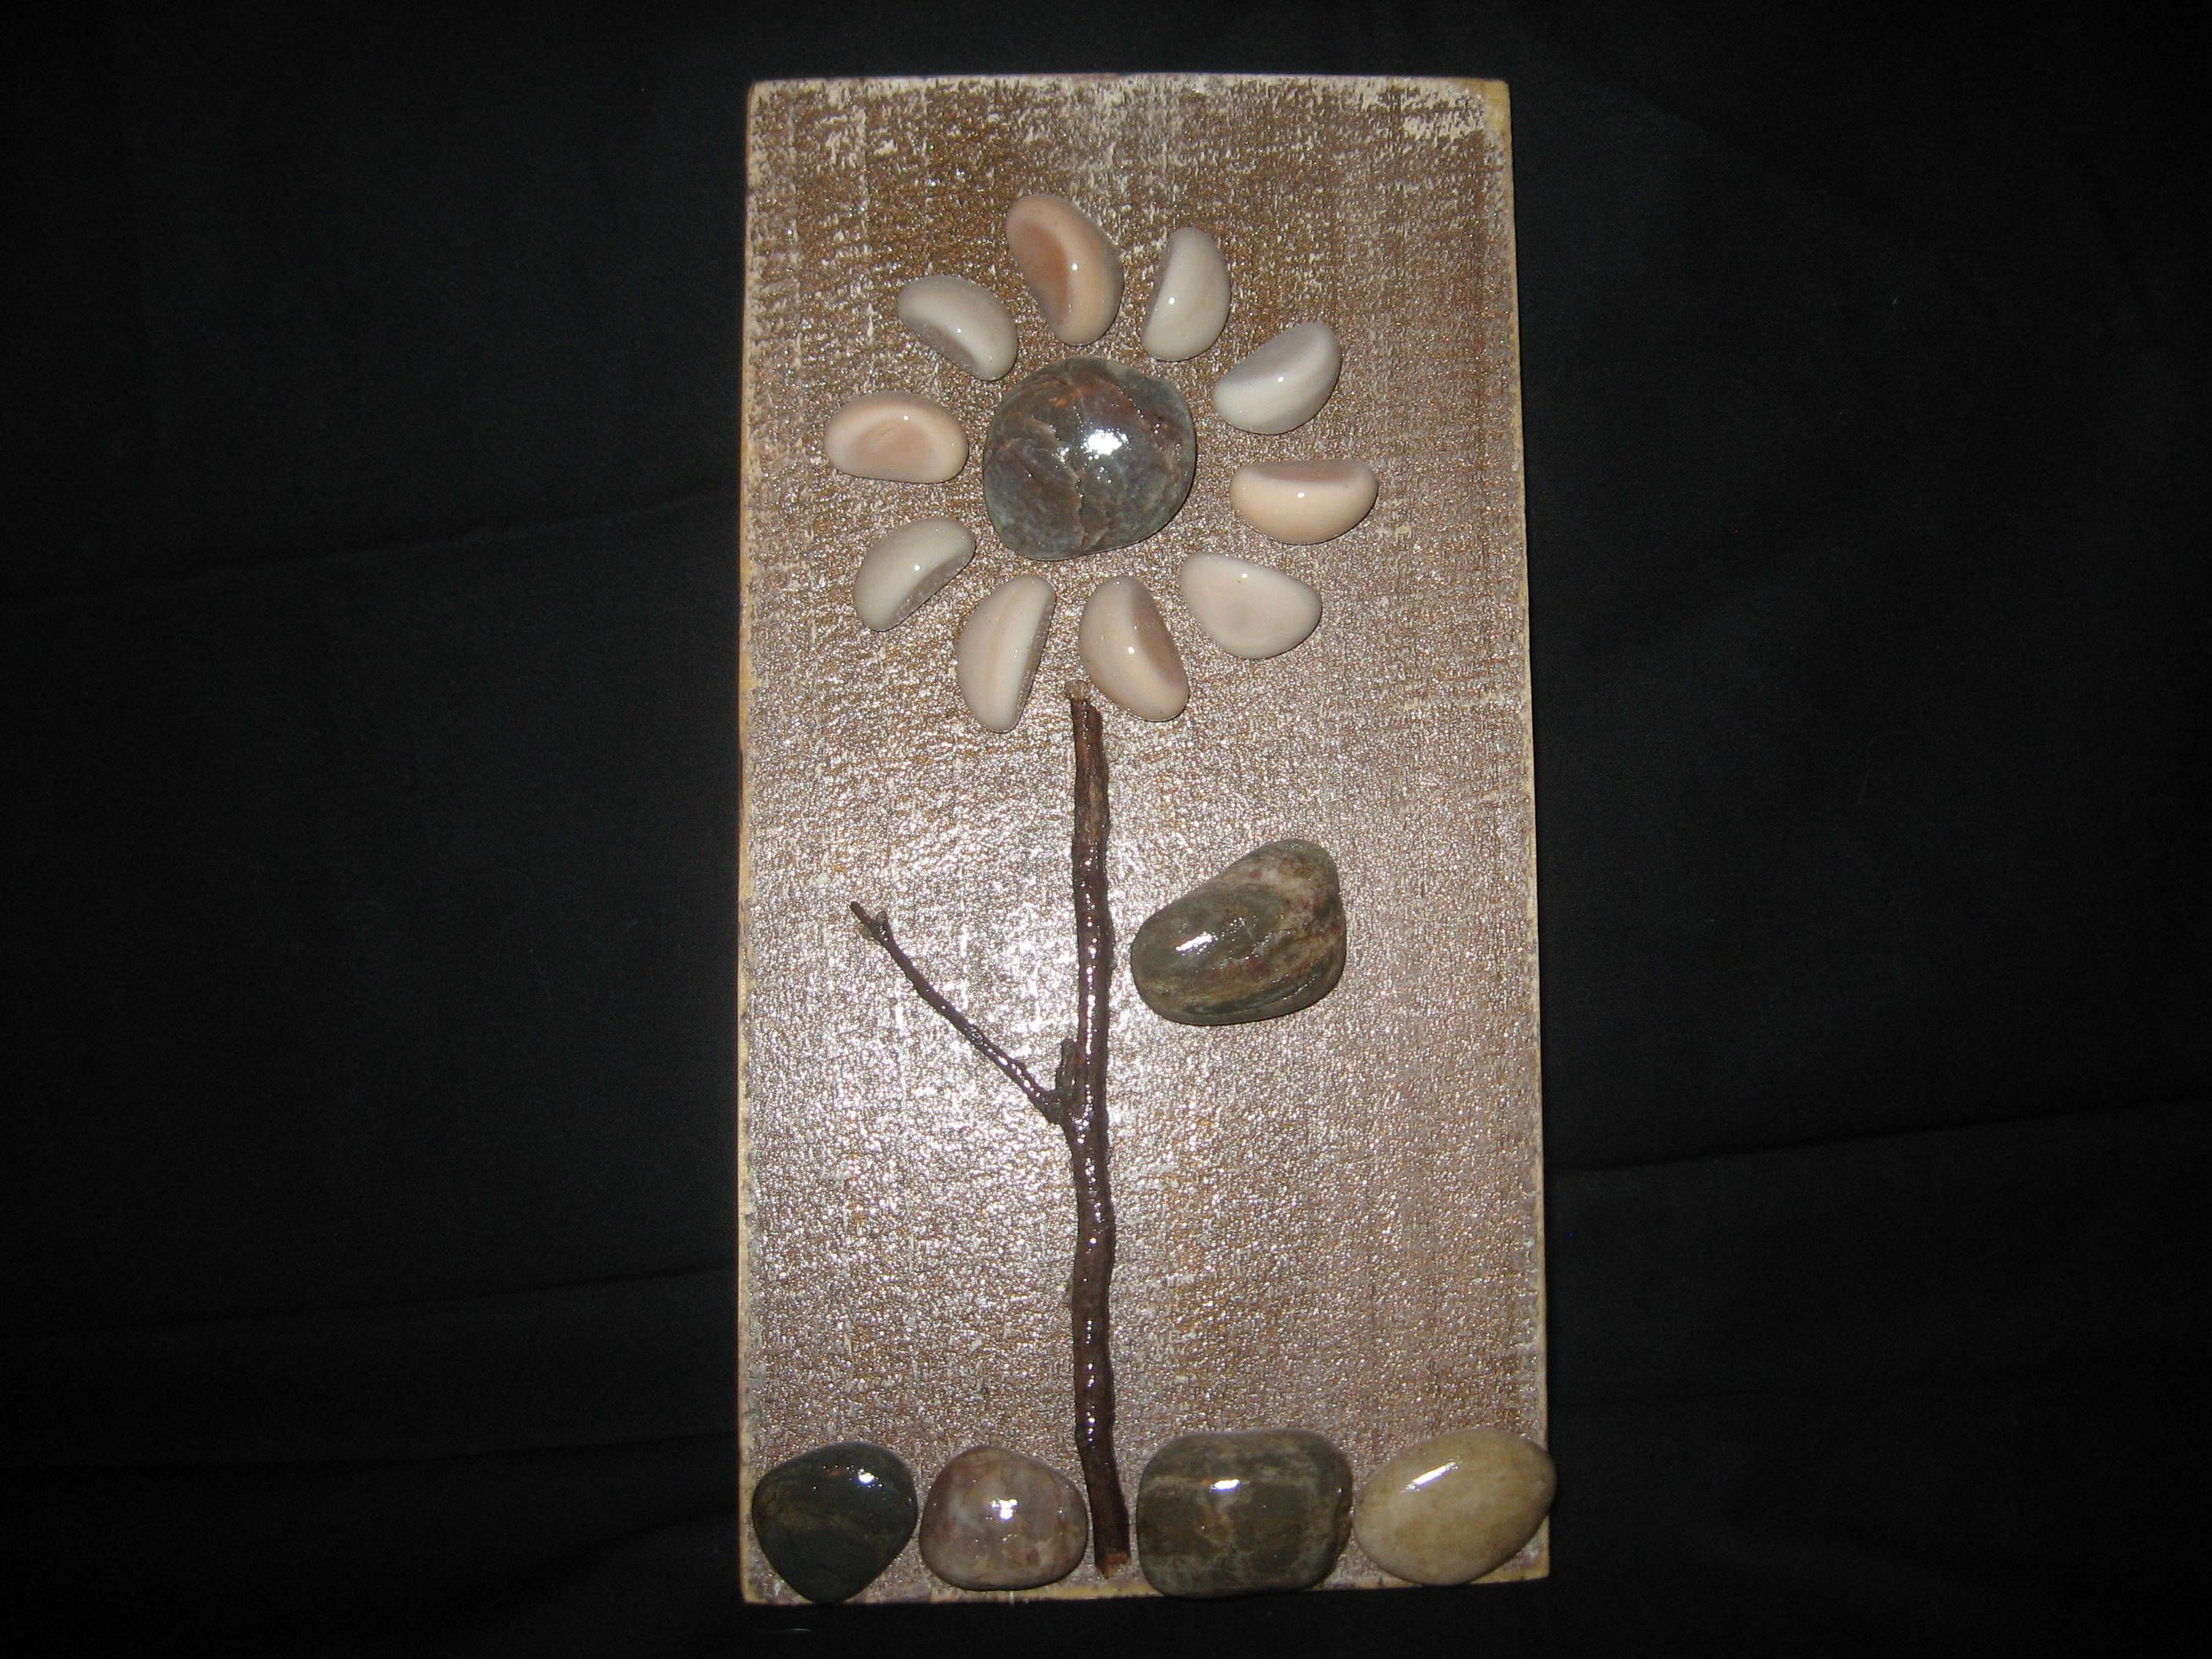 Flower wall art created with stones and wood mosaic style